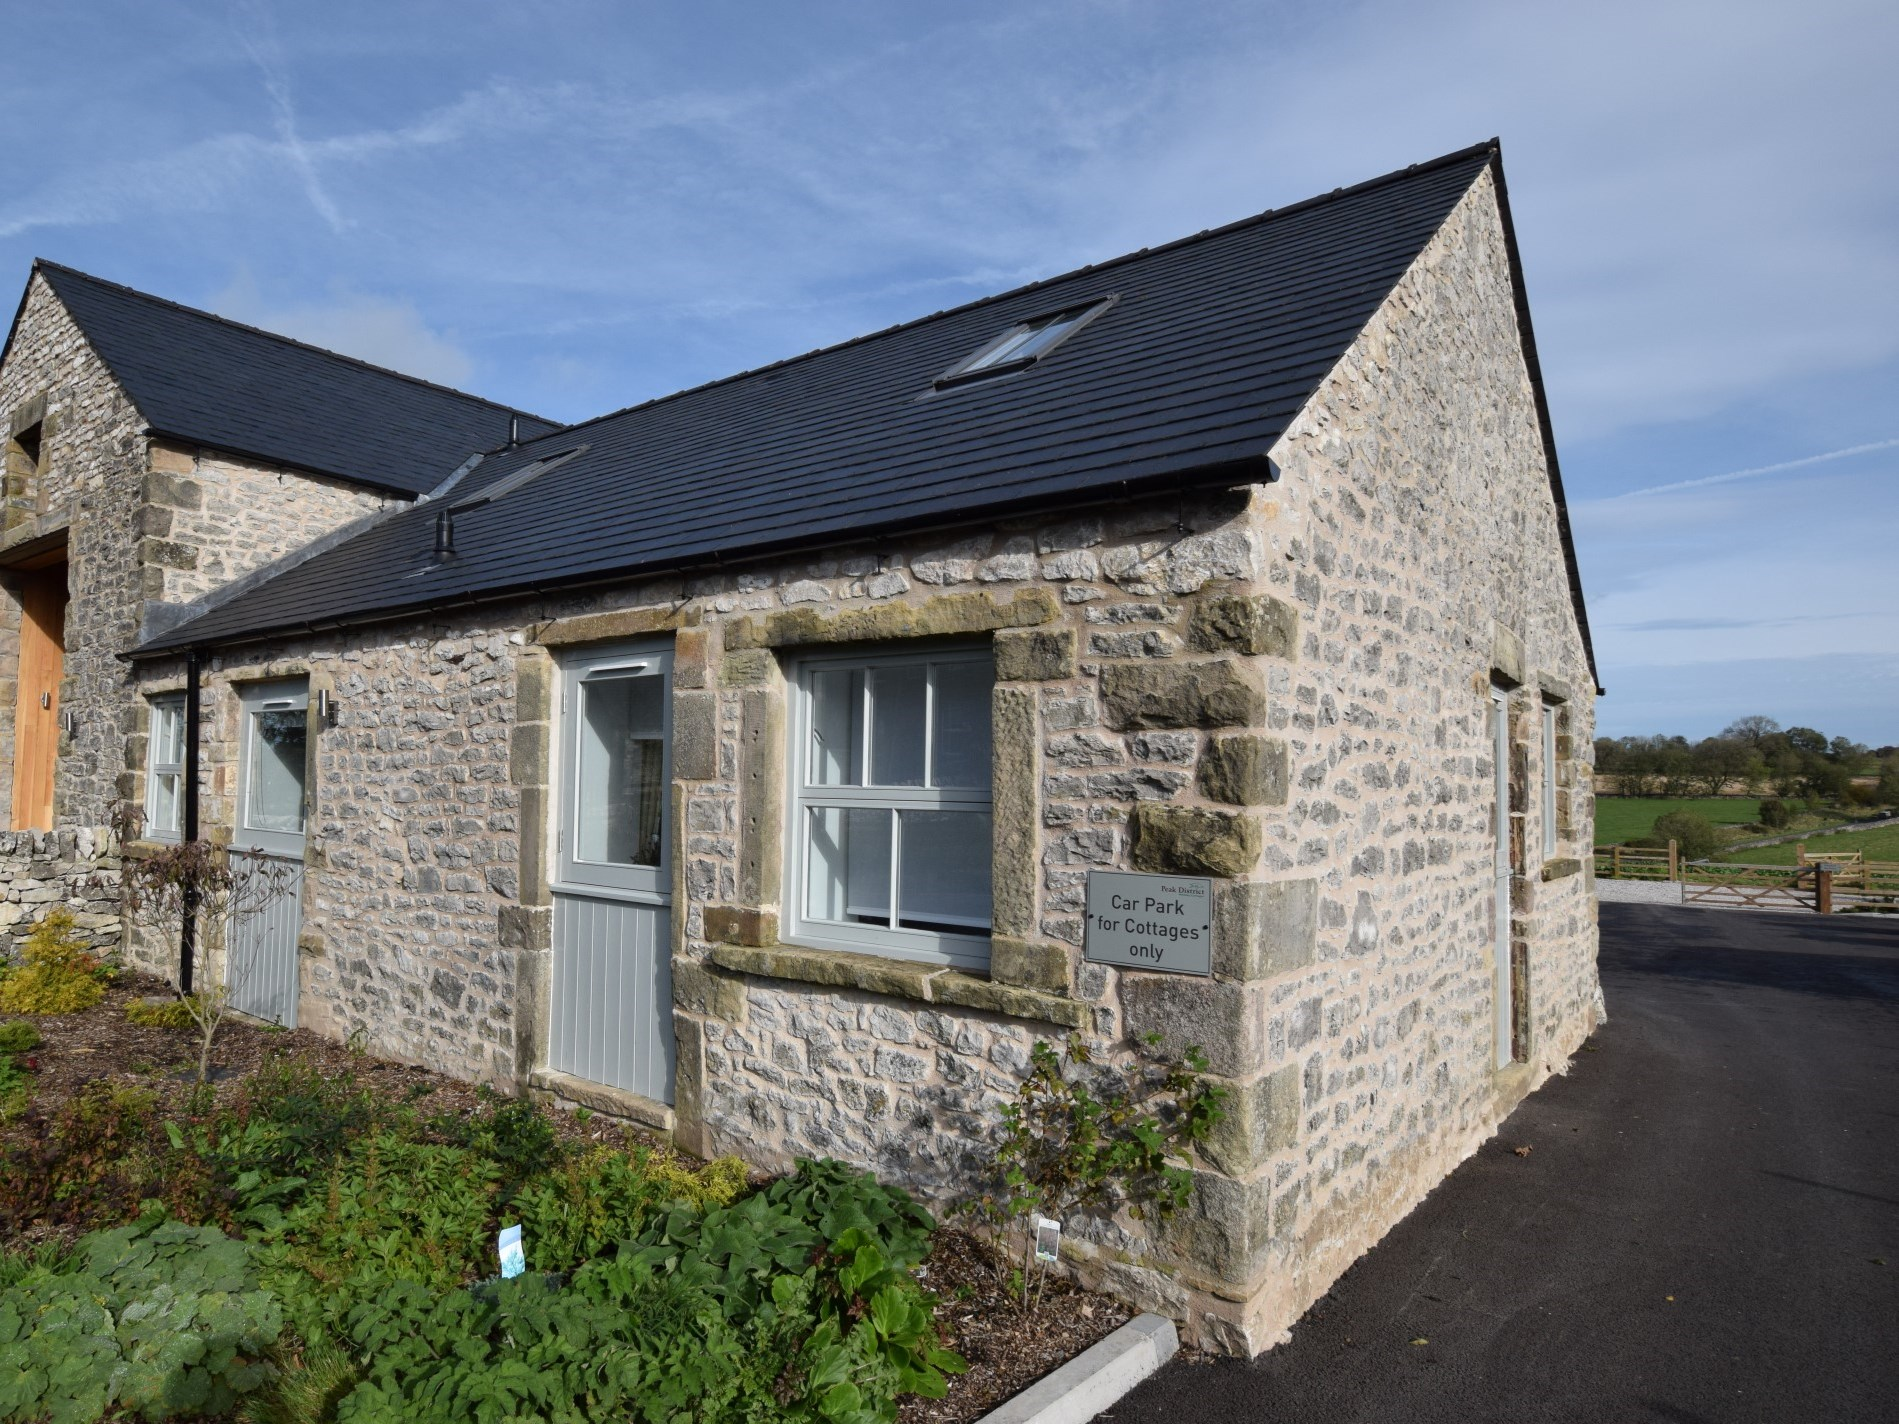 3 Bedroom Cottage in Buxton, Peak District